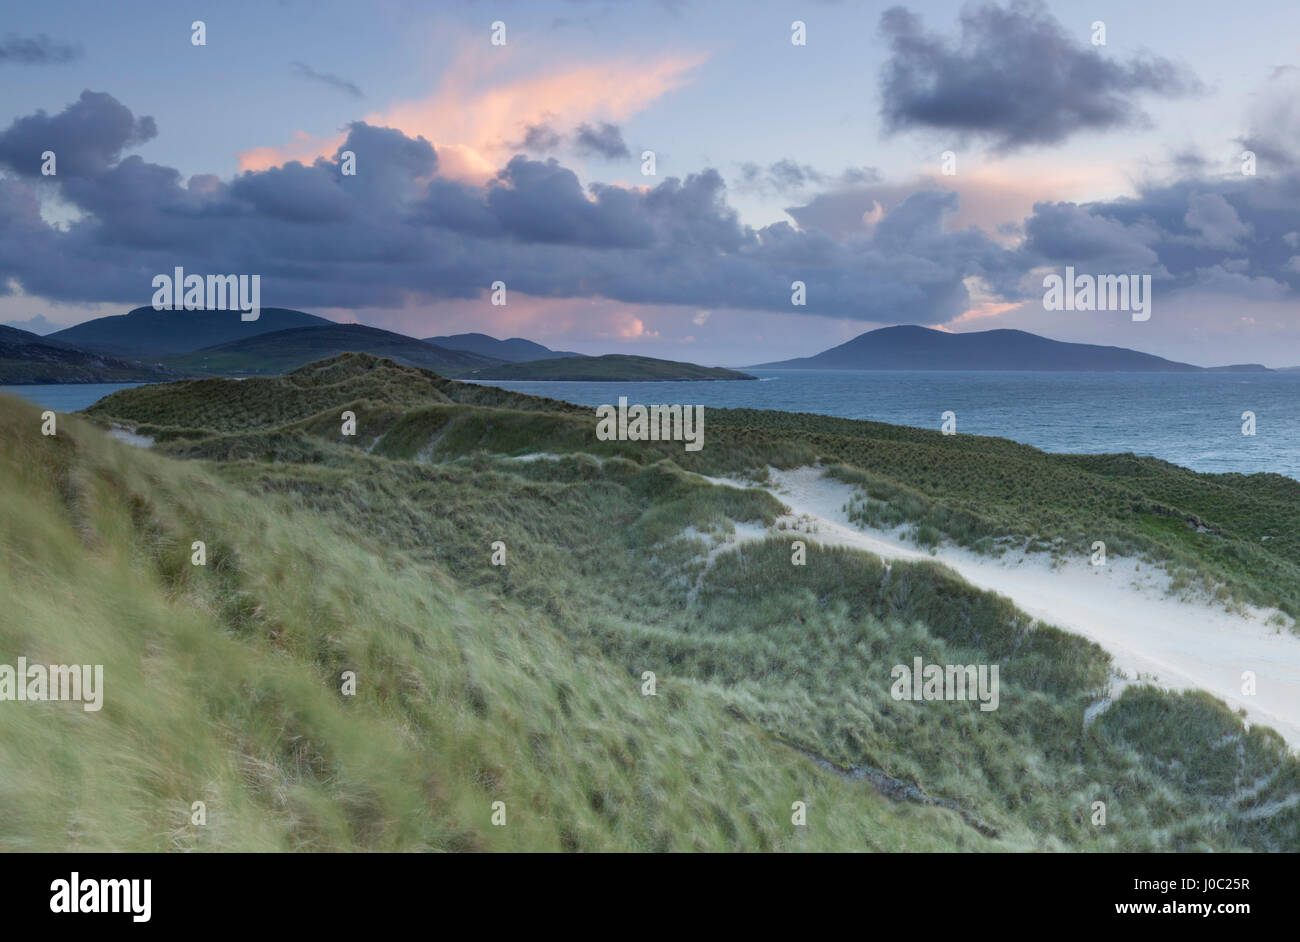 A view across the Sound of Taransay from the dunes at Luskentyre, Isle of Harris, Outer Hebrides, Scotland, UK - Stock Image